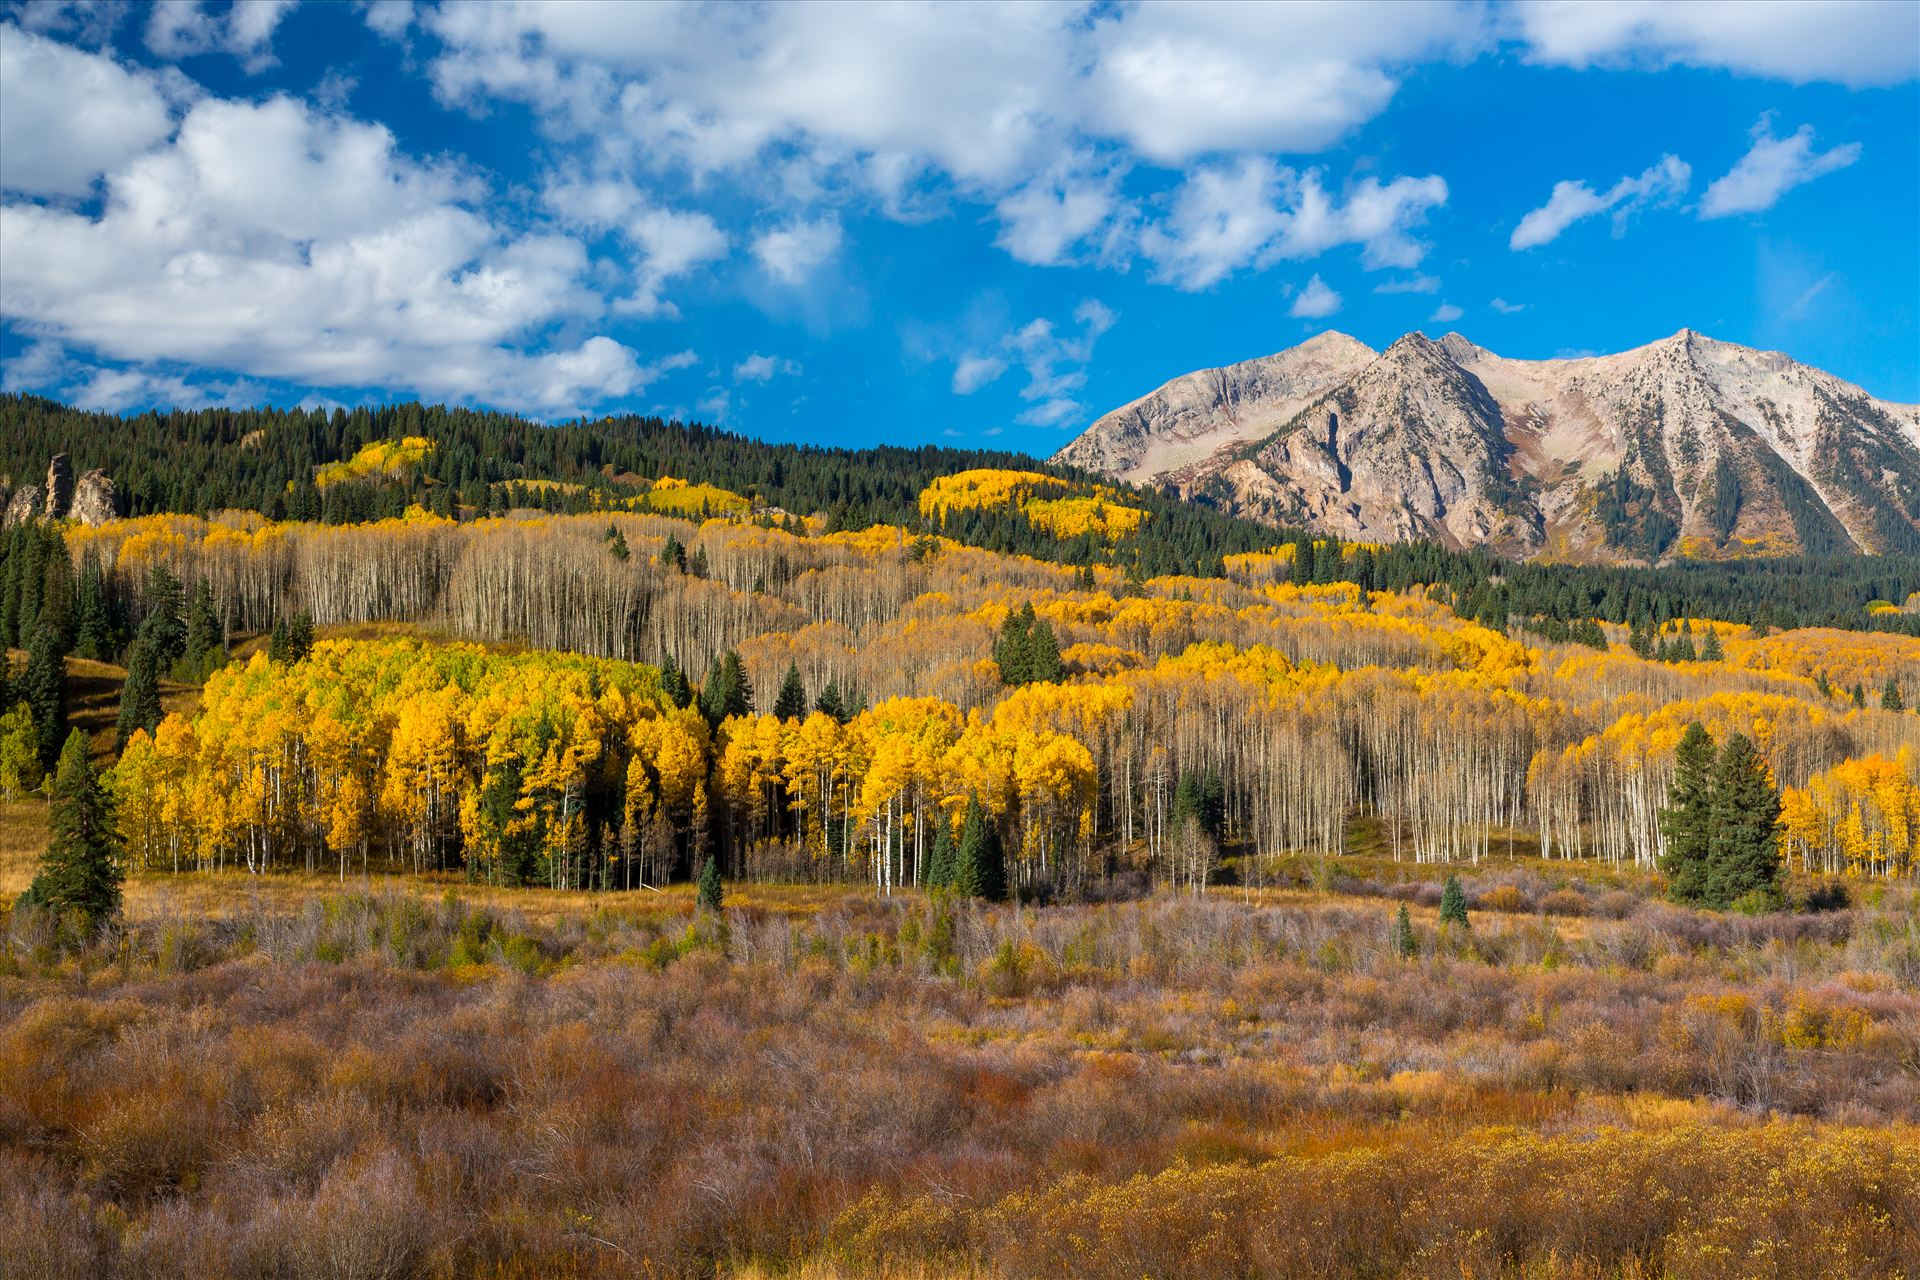 East Beckwith Mountain - East Beckwith mountain surrounded by fall colors. Taken a few steps off Kebler Pass, Crested Butte, Colorado. by D Scott Smith